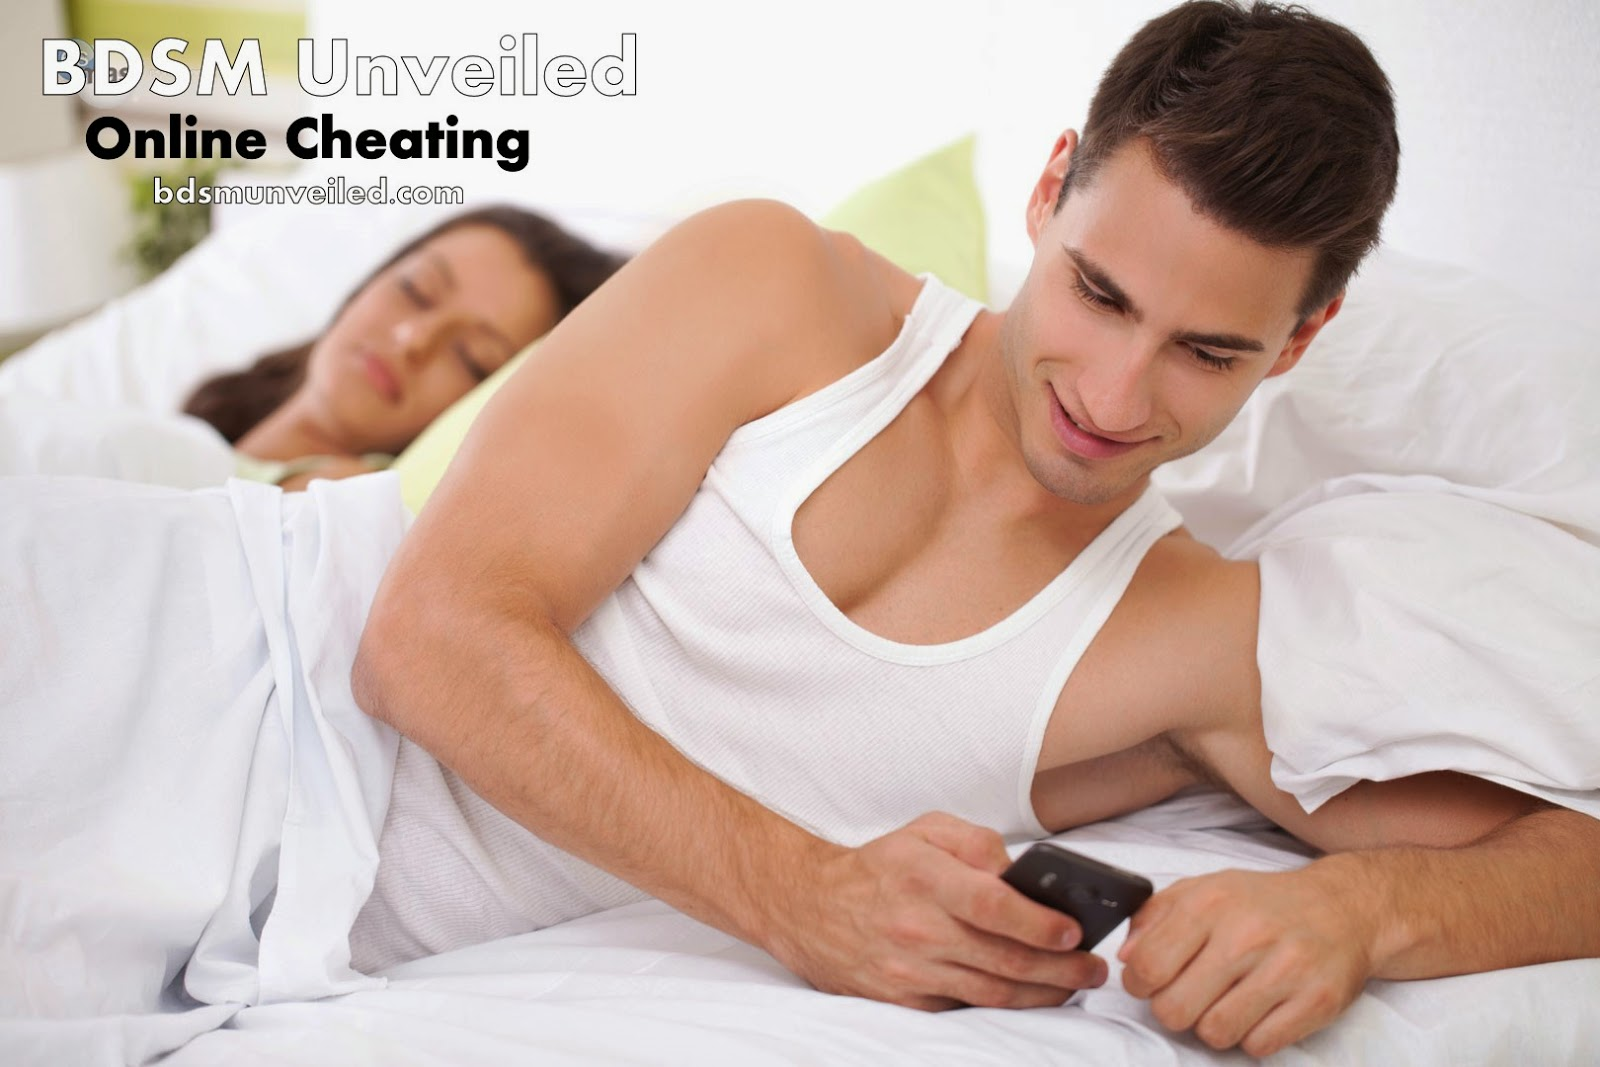 Online Cheating - BDSM Relationships